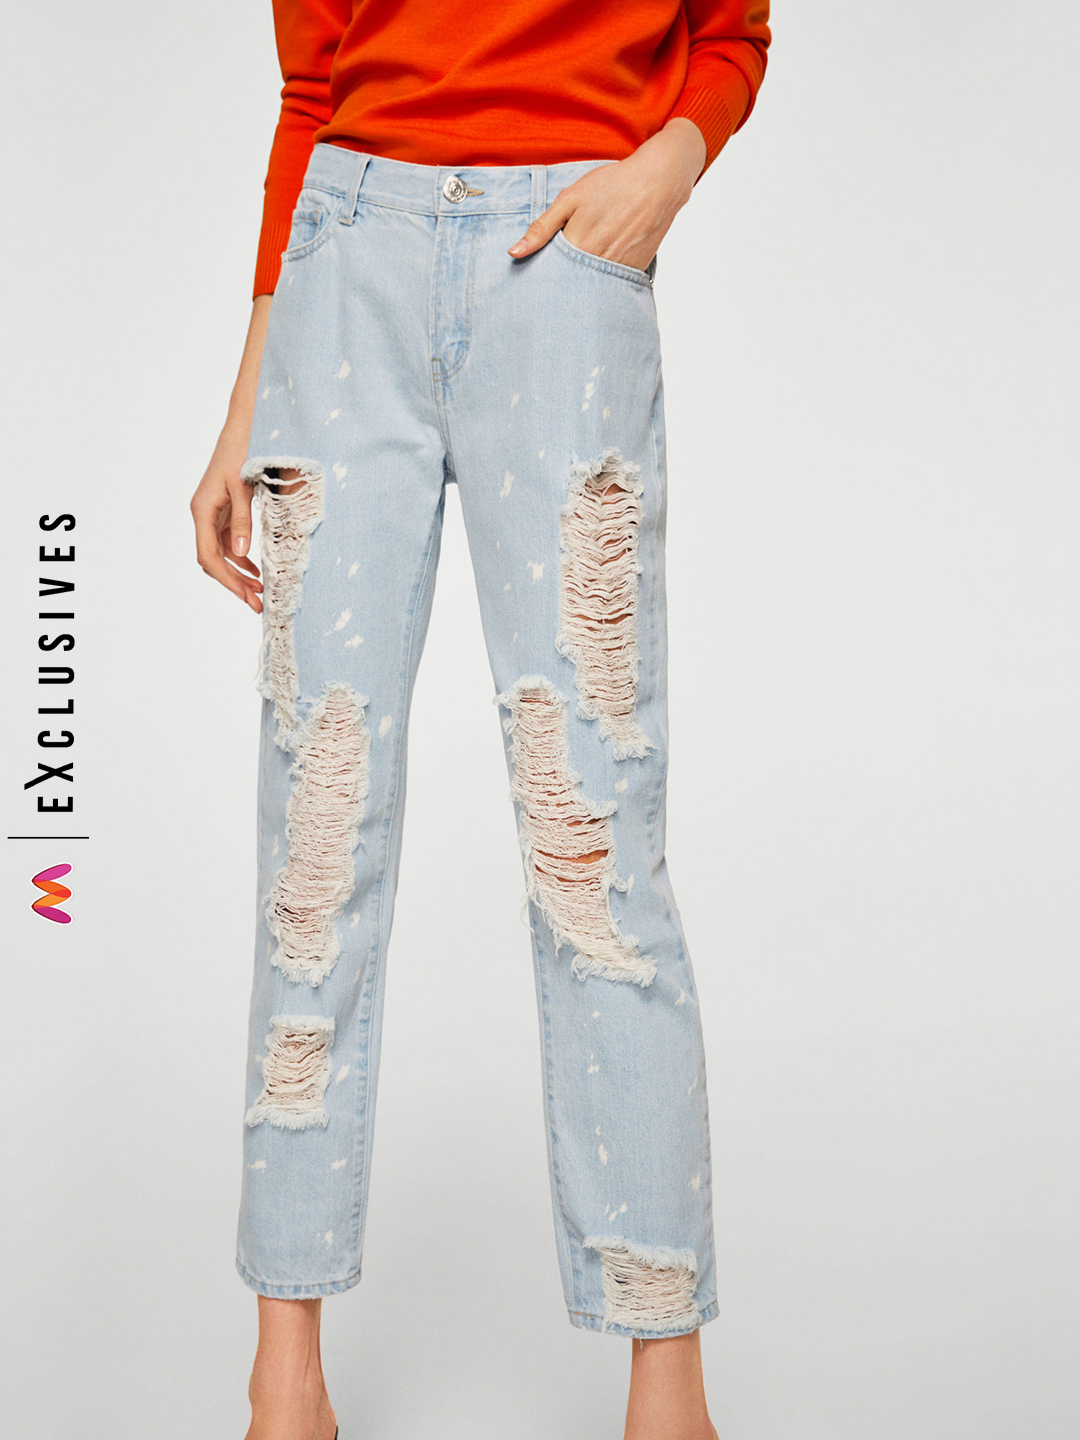 6-malaika-arora-khan-Blue-Relaxed-Fit-Mid-Rise-Highly-Distressed-Jeans